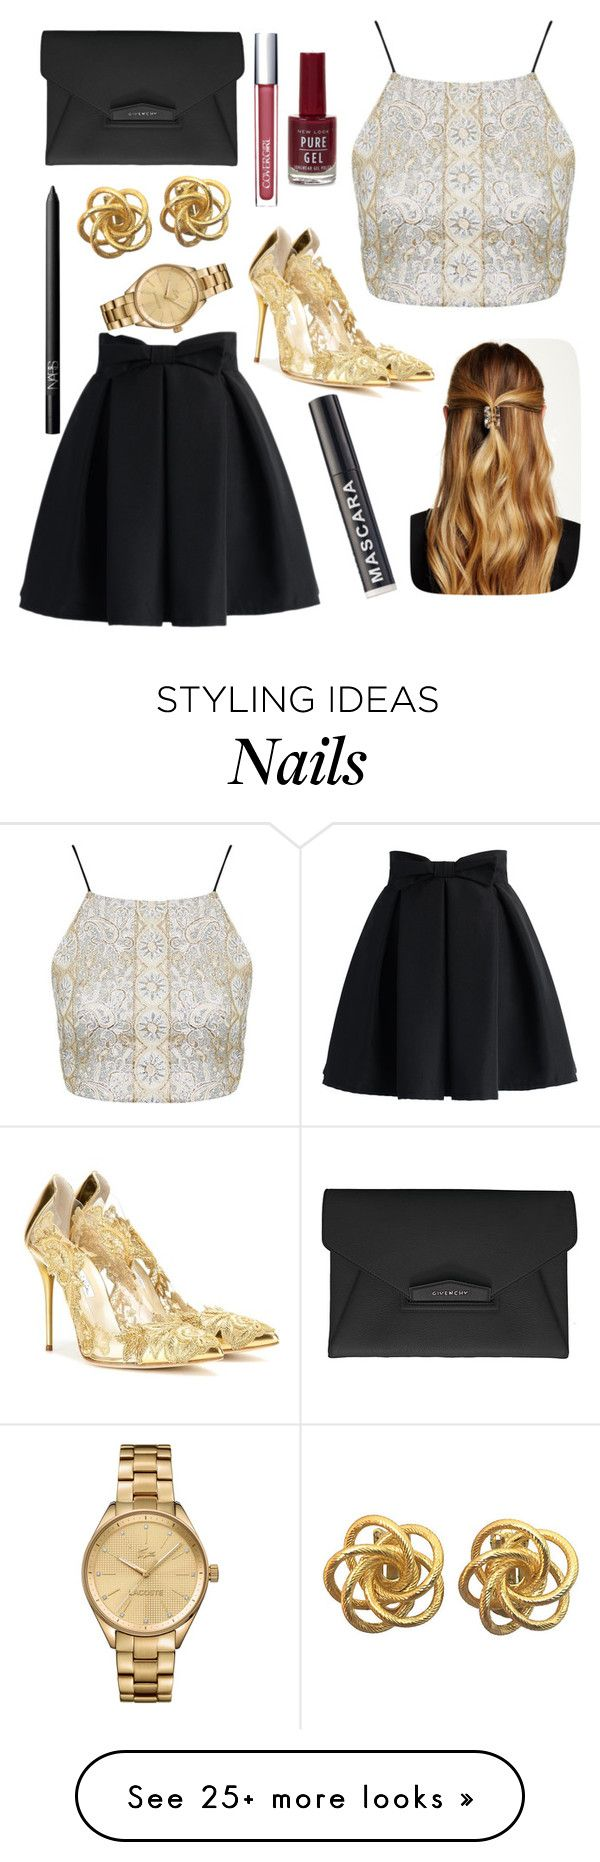 """Gold + Black = Fab"" by barbiecar on Polyvore featuring Givenchy, Chicwish, Topshop, Oscar de la Renta, Natasha Accessories, NARS Cosmetics and Lacoste"